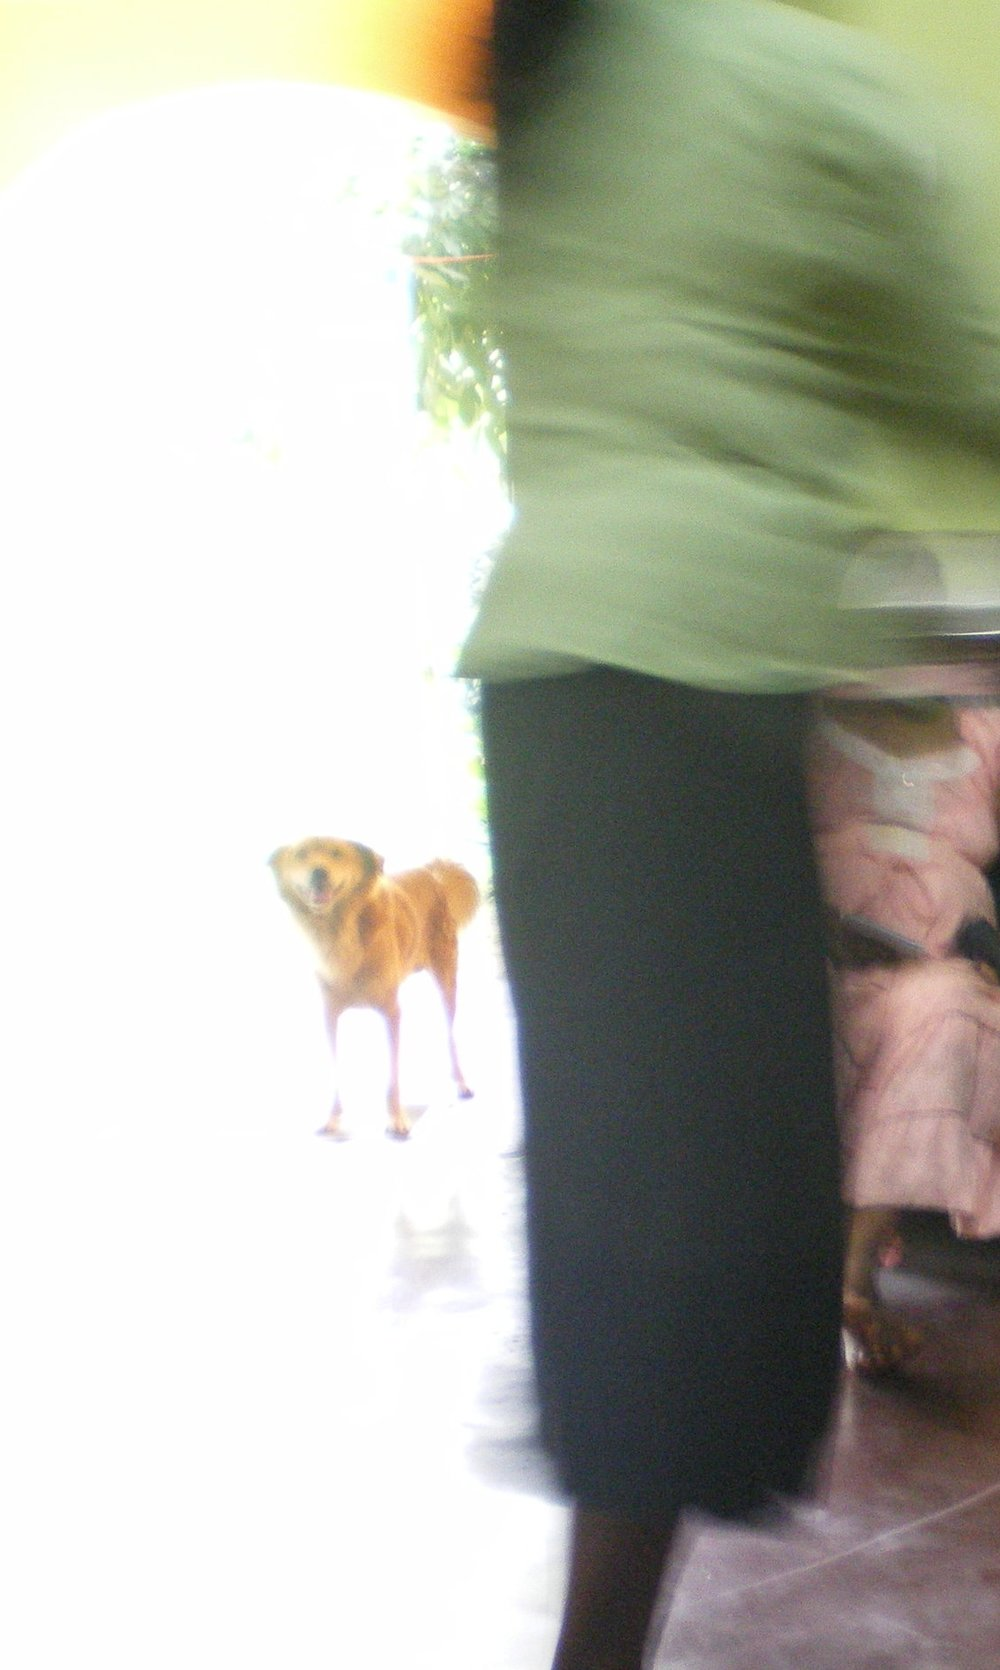 A woman speaks at the small group meeting while a dog looks on from the doorway